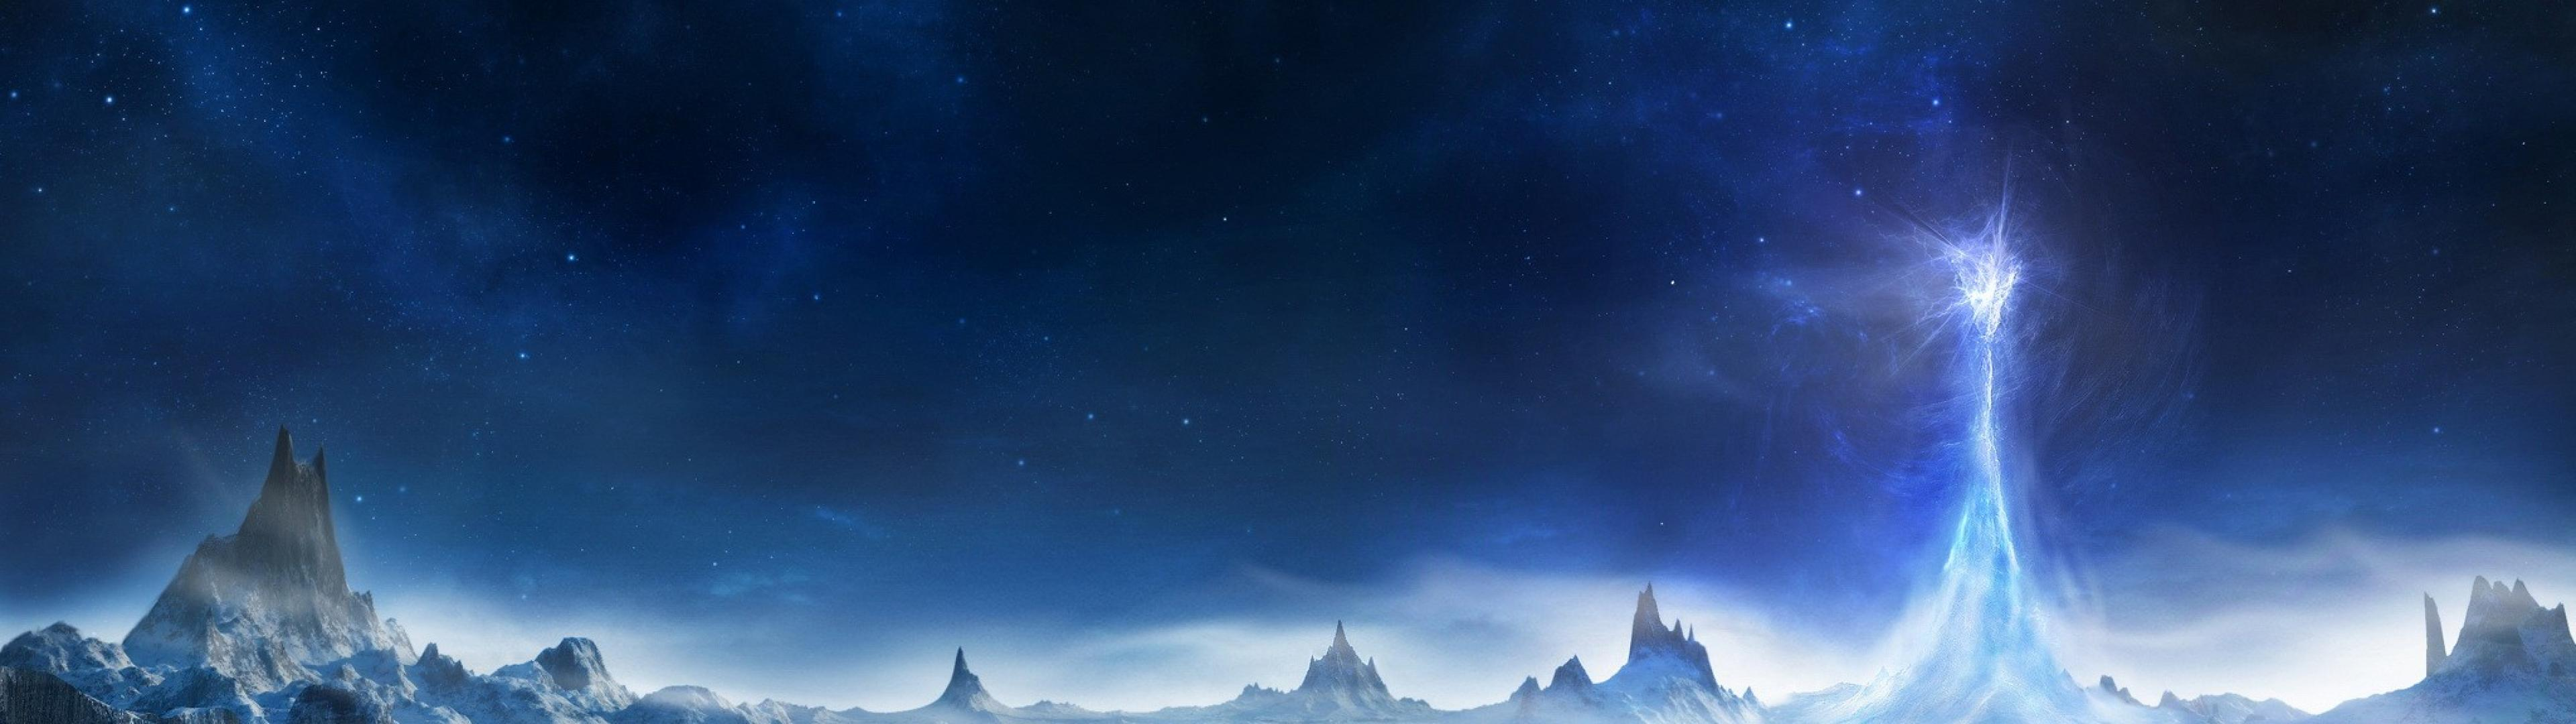 Energy planet surface ice mountains fantasy 3840x1080 hd-wallpaper-4351.jpg